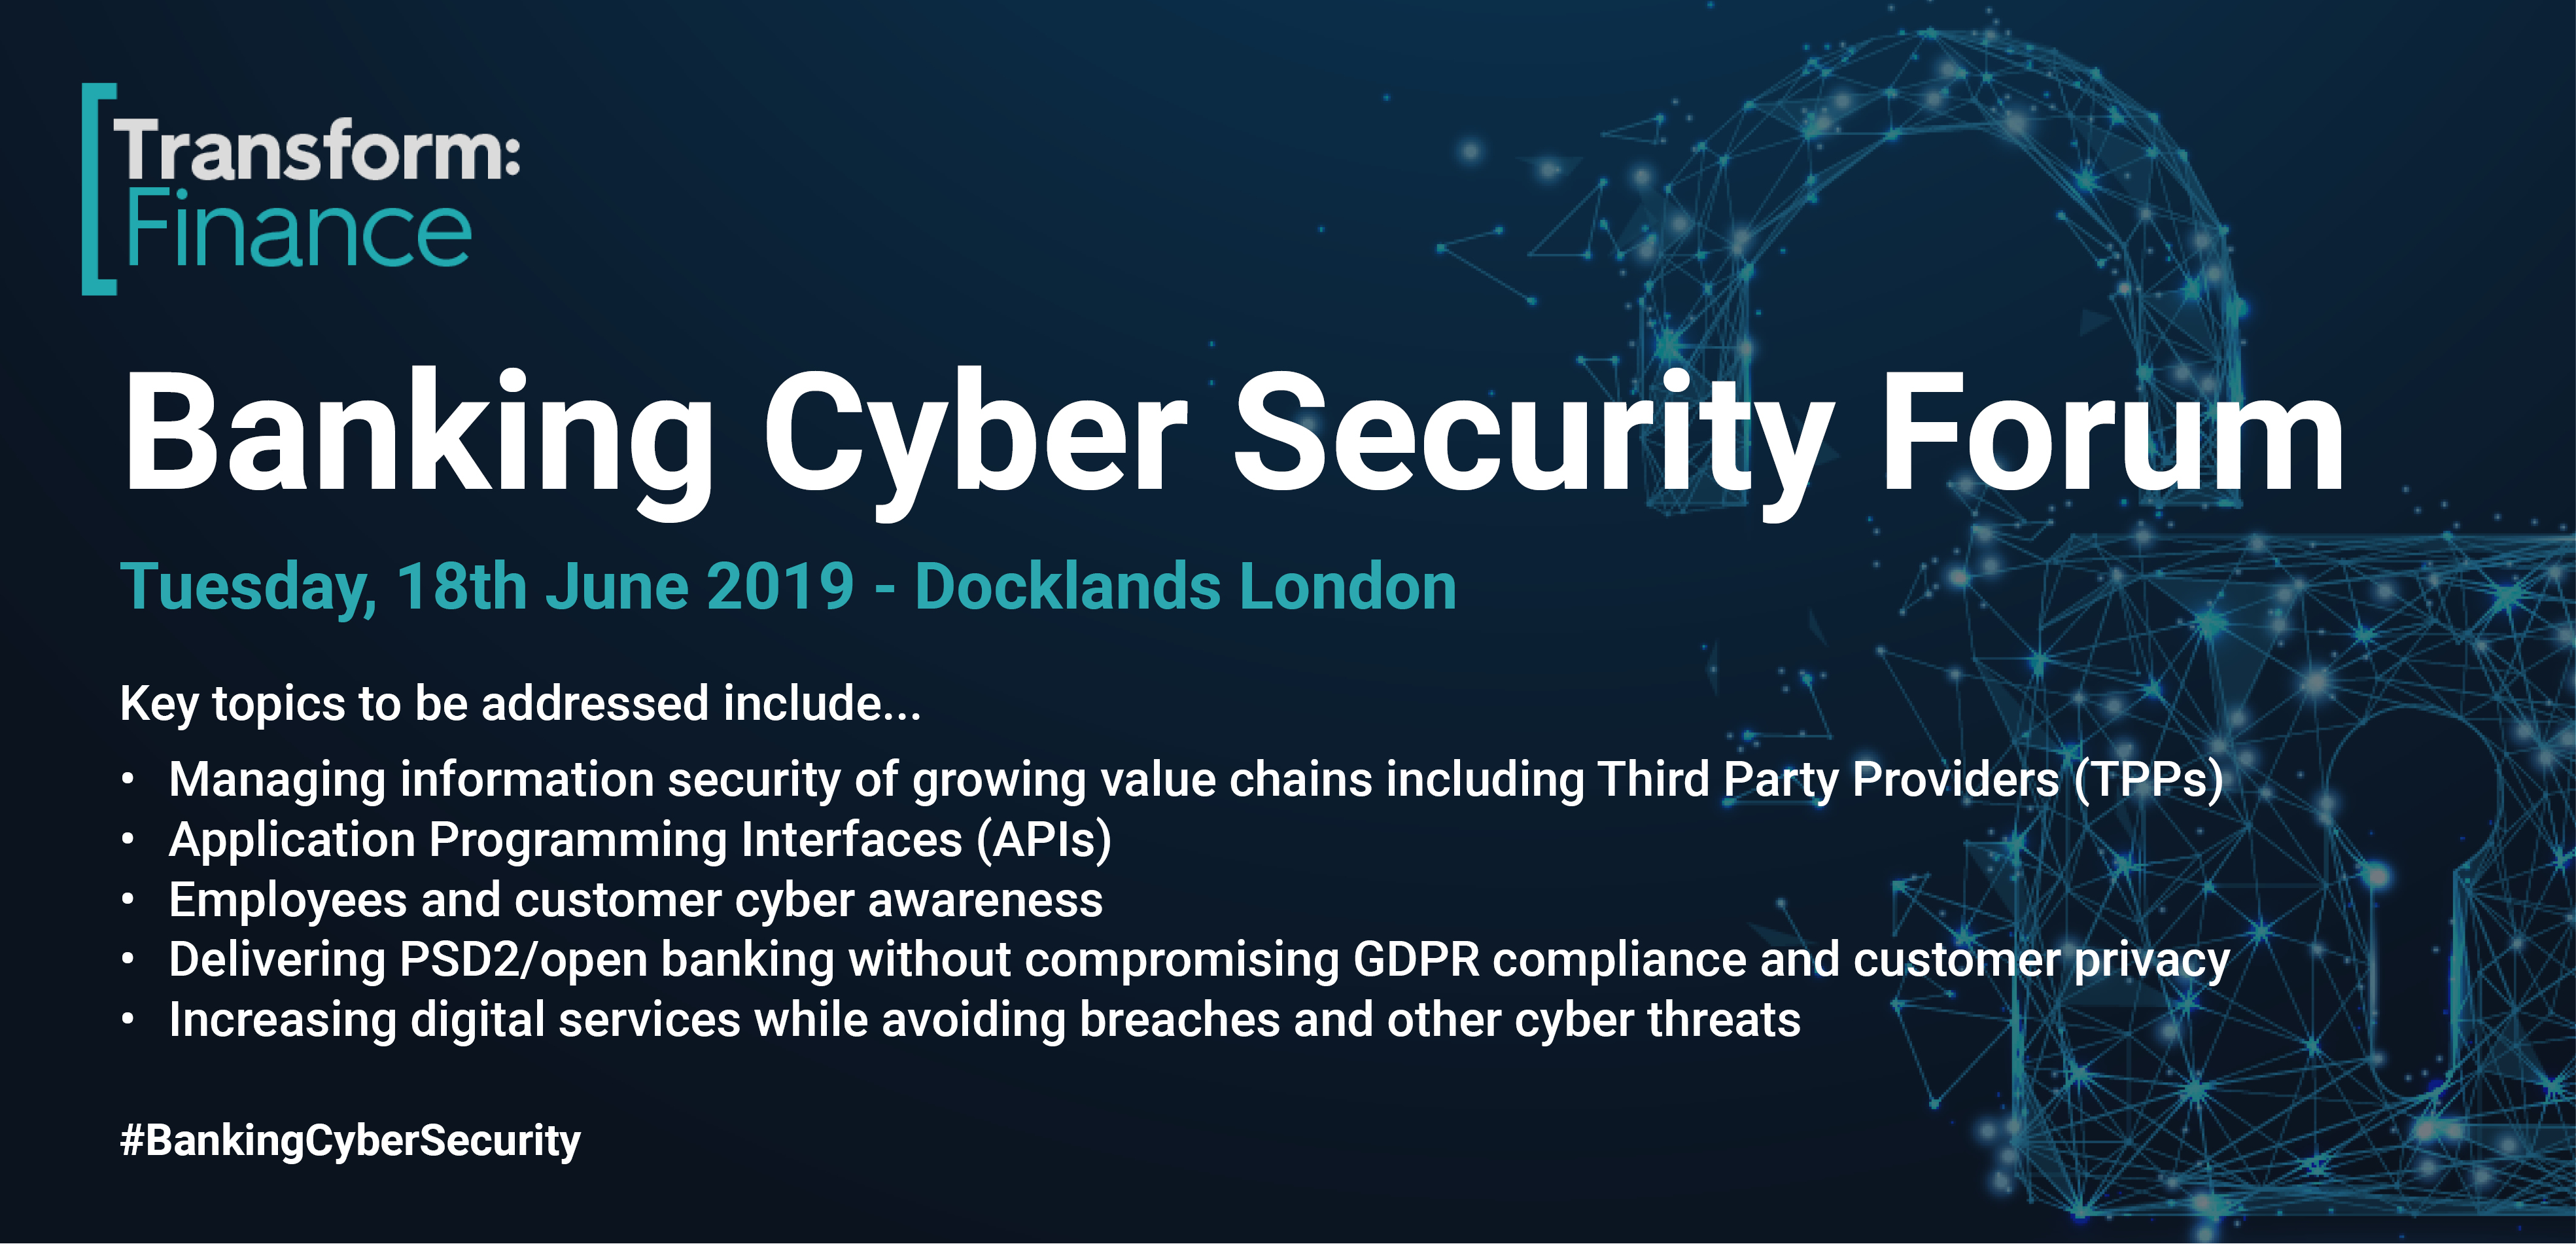 Banking Cyber Security Forum 2019 The Fintech Power 50